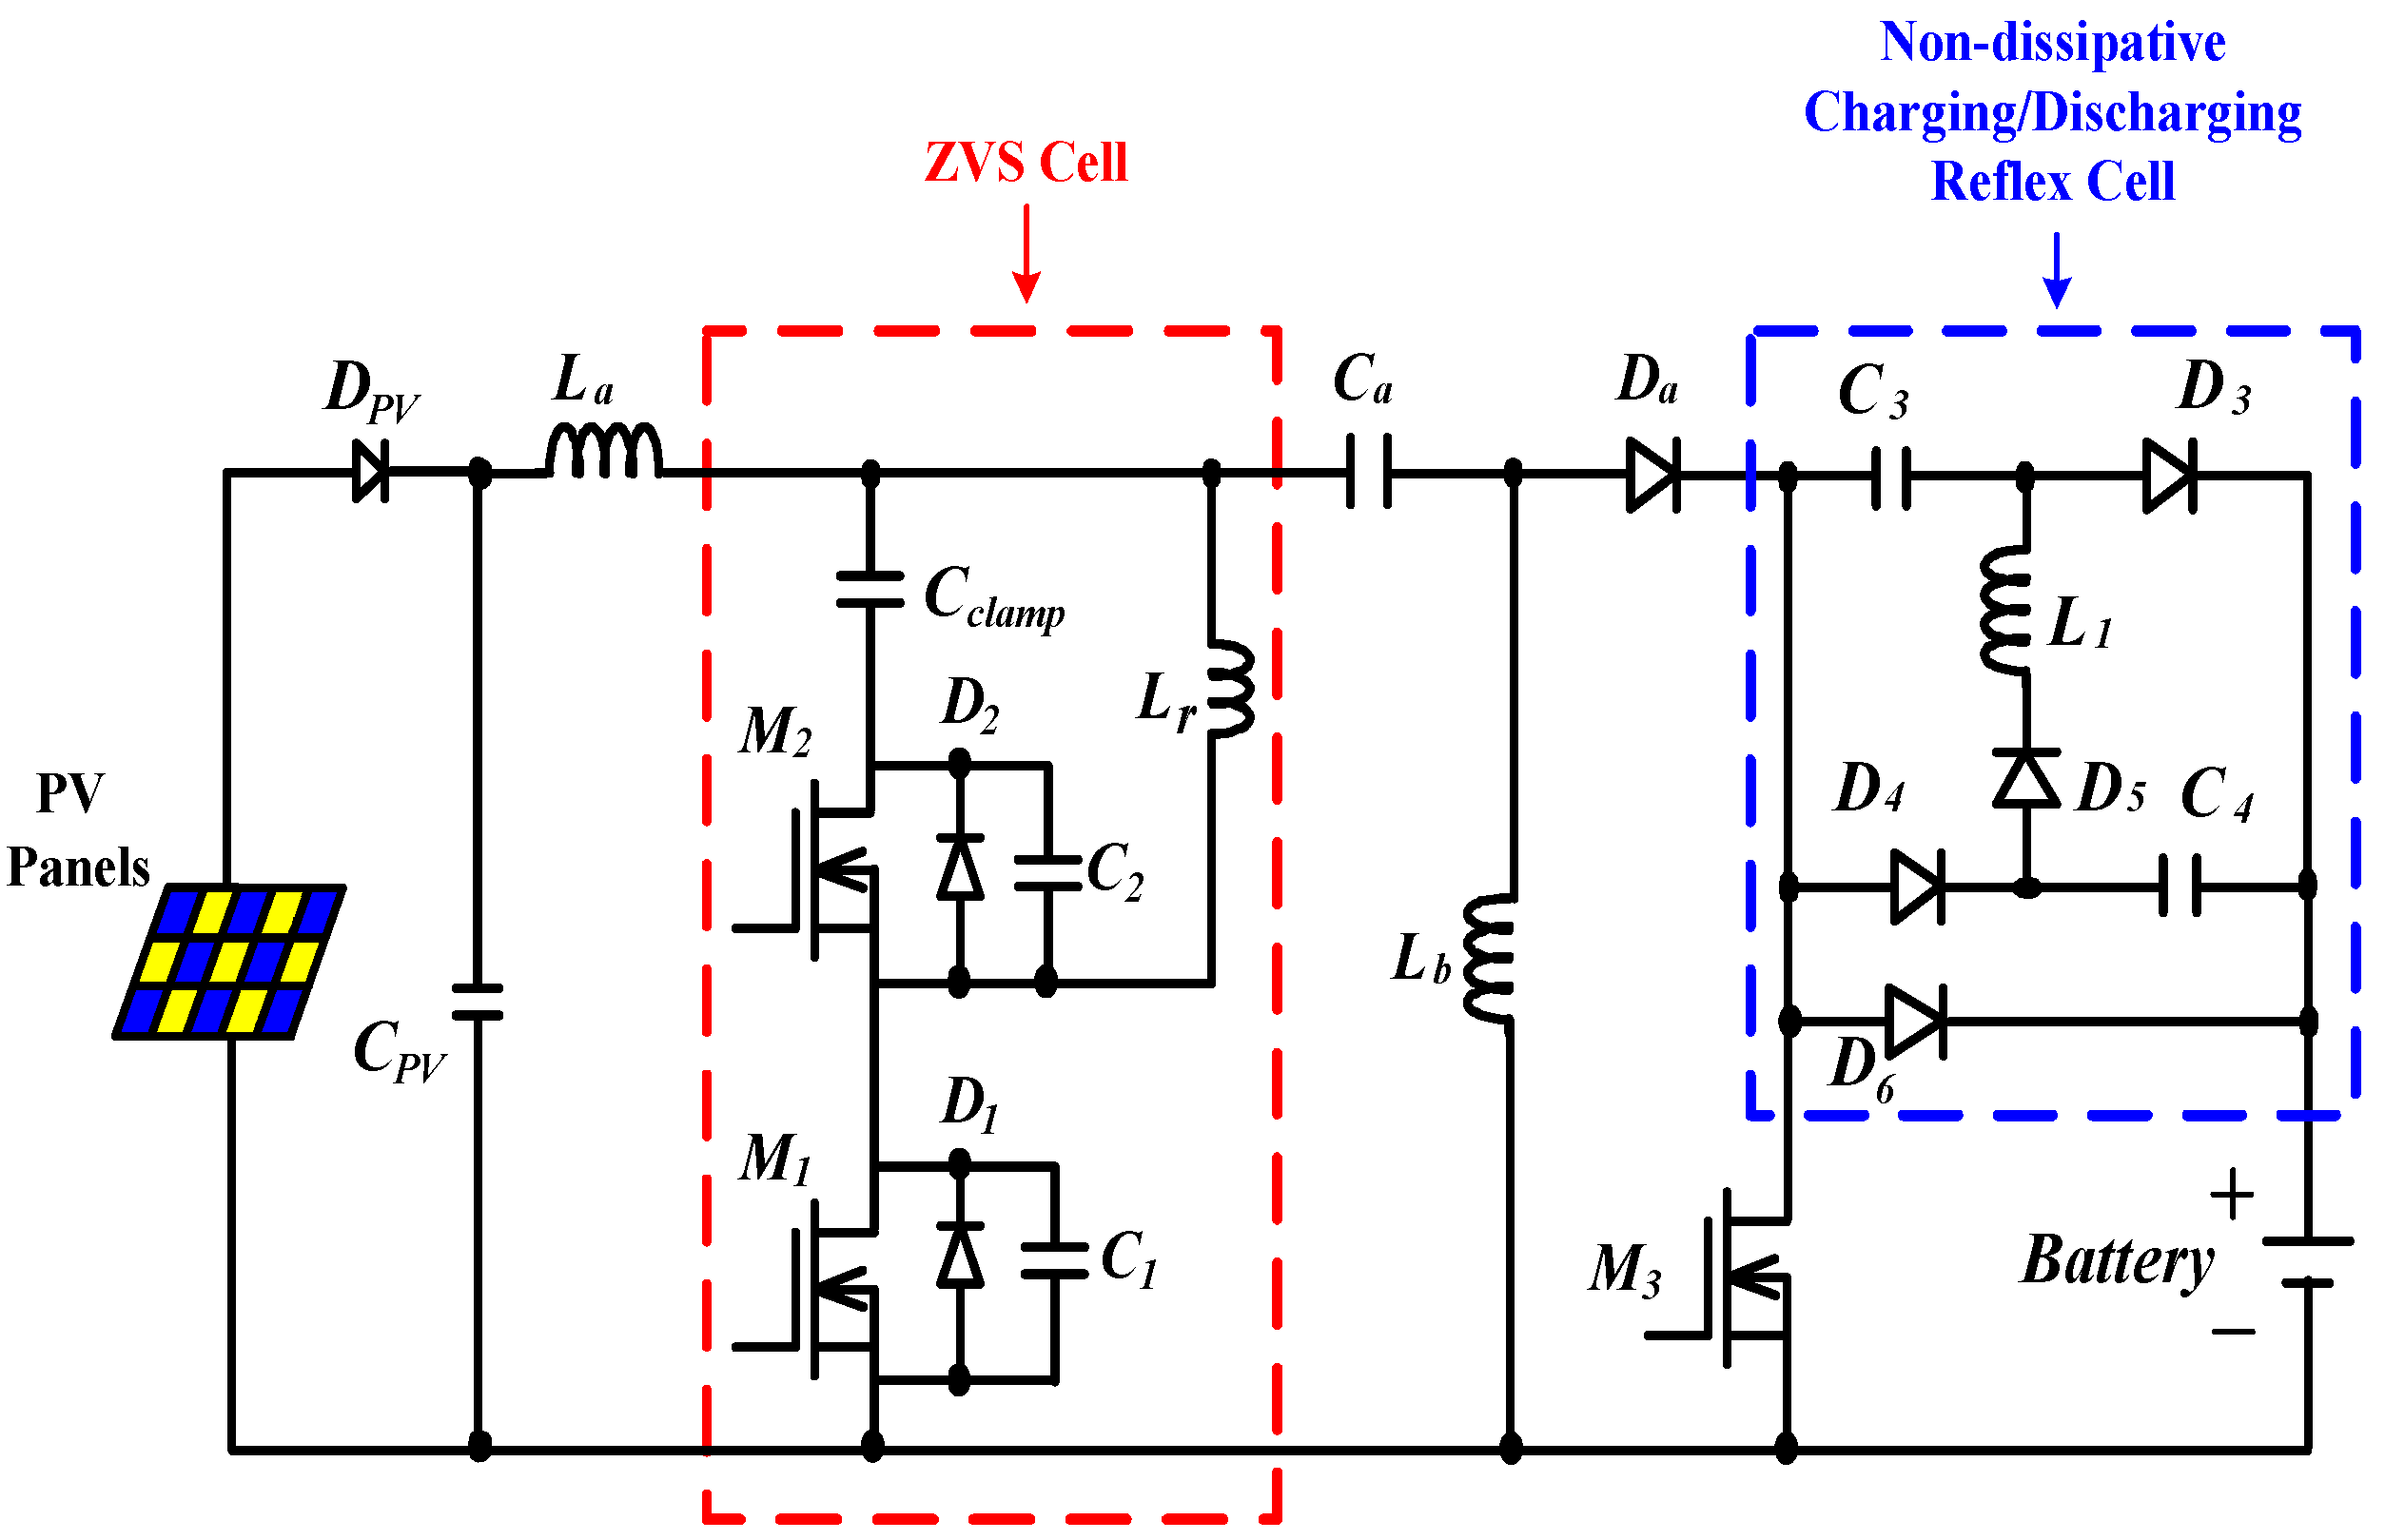 Energies Free Full Text A Reflex Charger With Zvs And Non Lead Acid Battery Circuit Diagram On Dc 12 Volt Photo Cell 08 01373 G003 1024